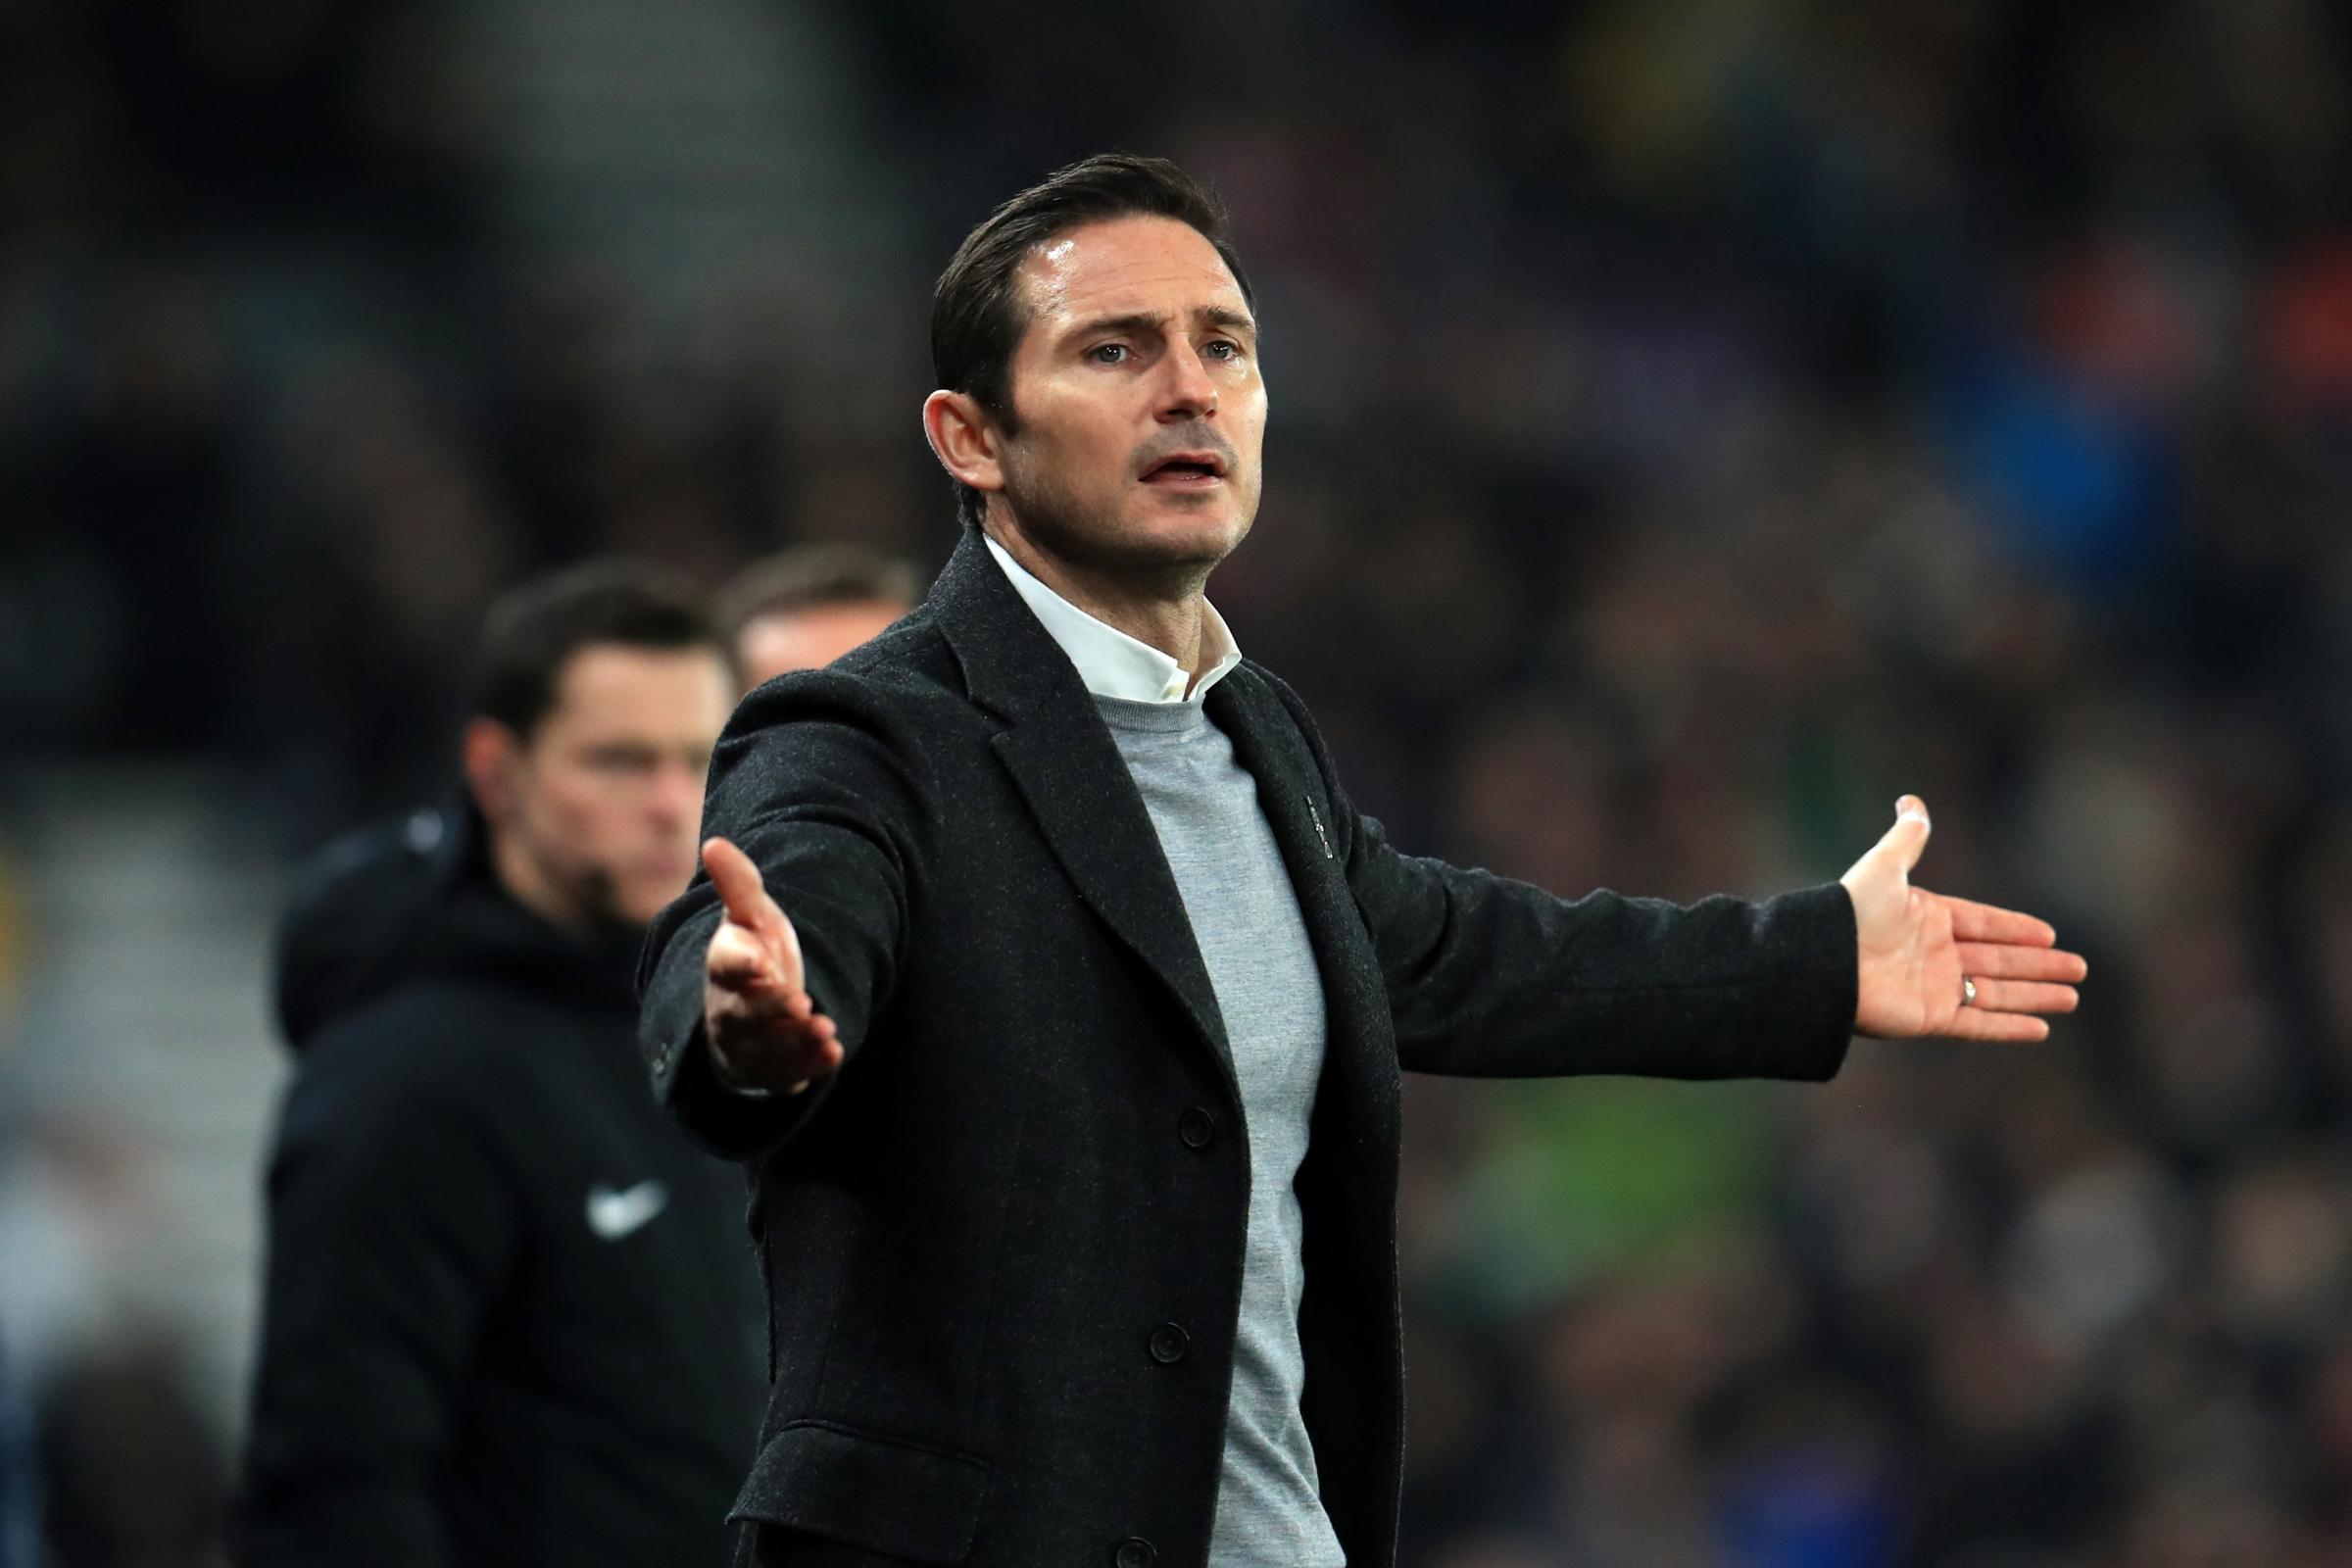 Frank Lampard hit out at his opposite number